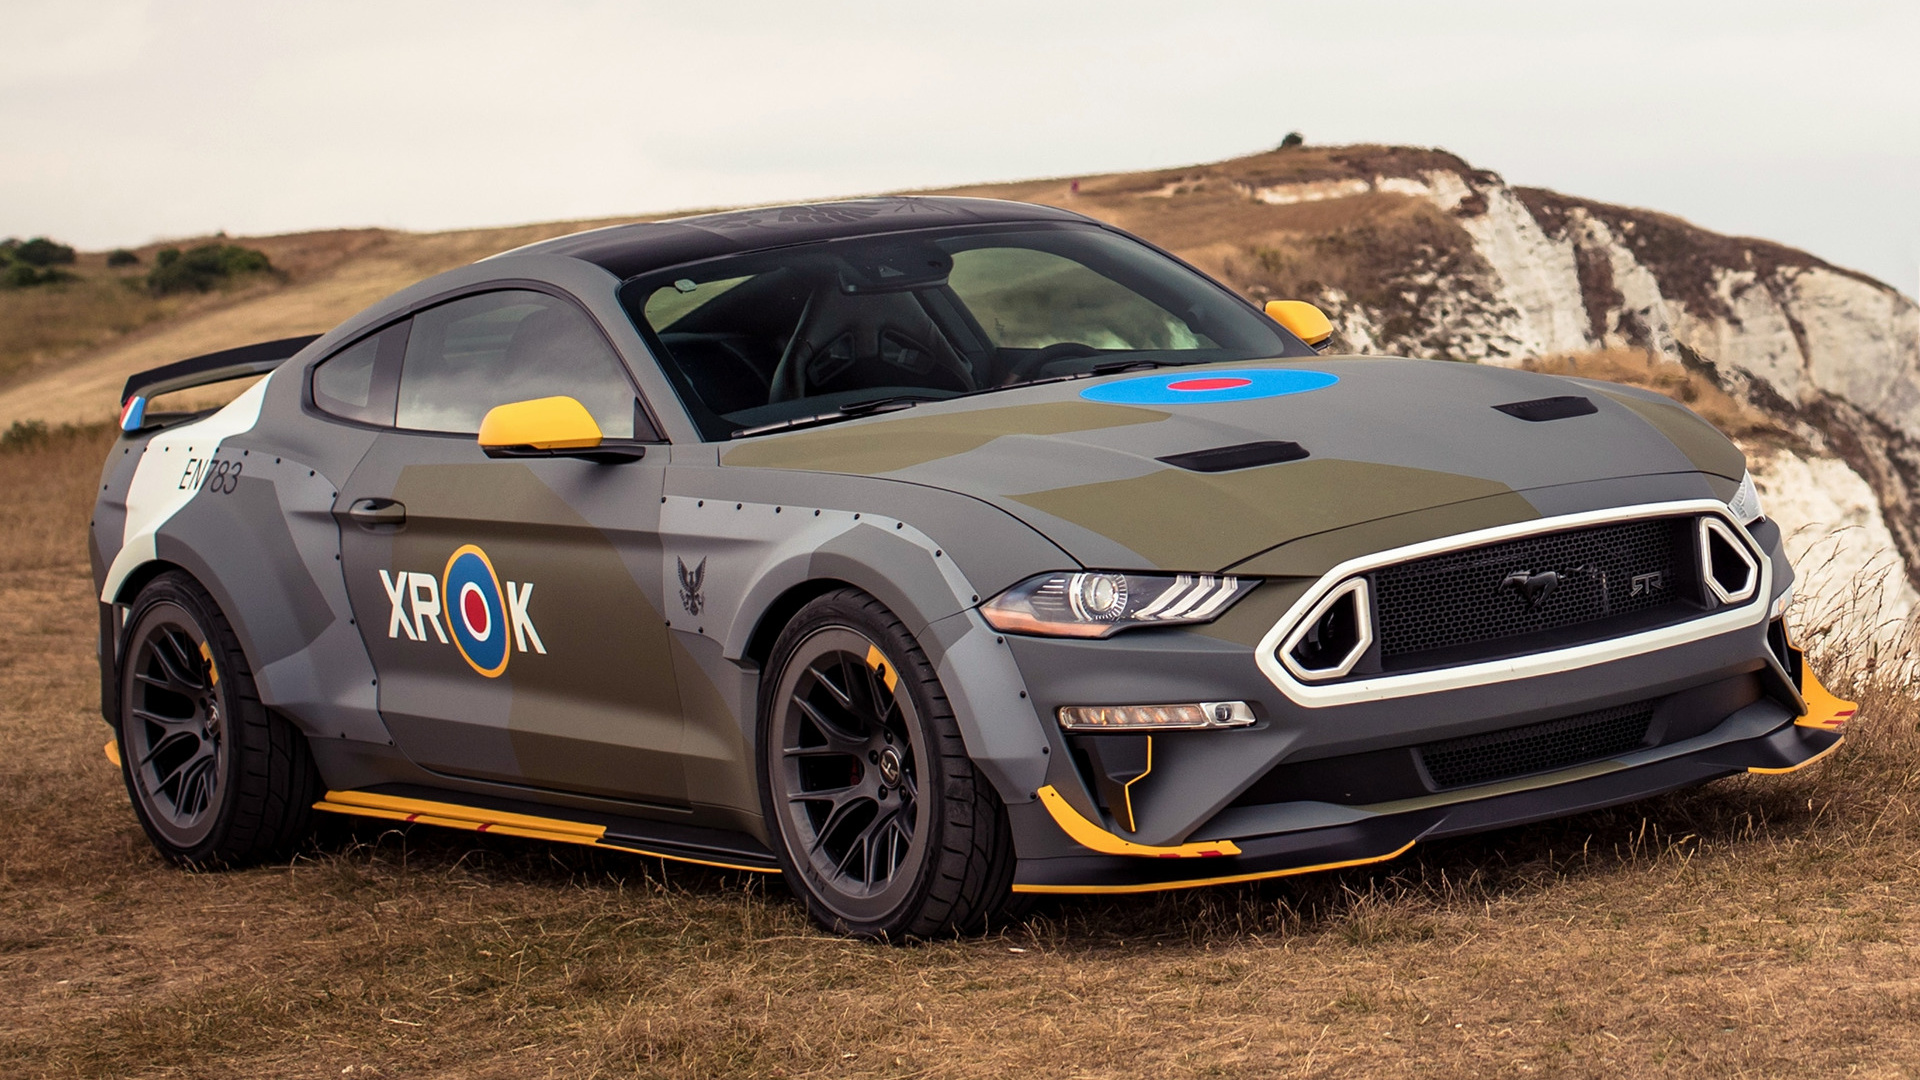 2018 ford eagle squadron mustang gt hd wallpaper background image